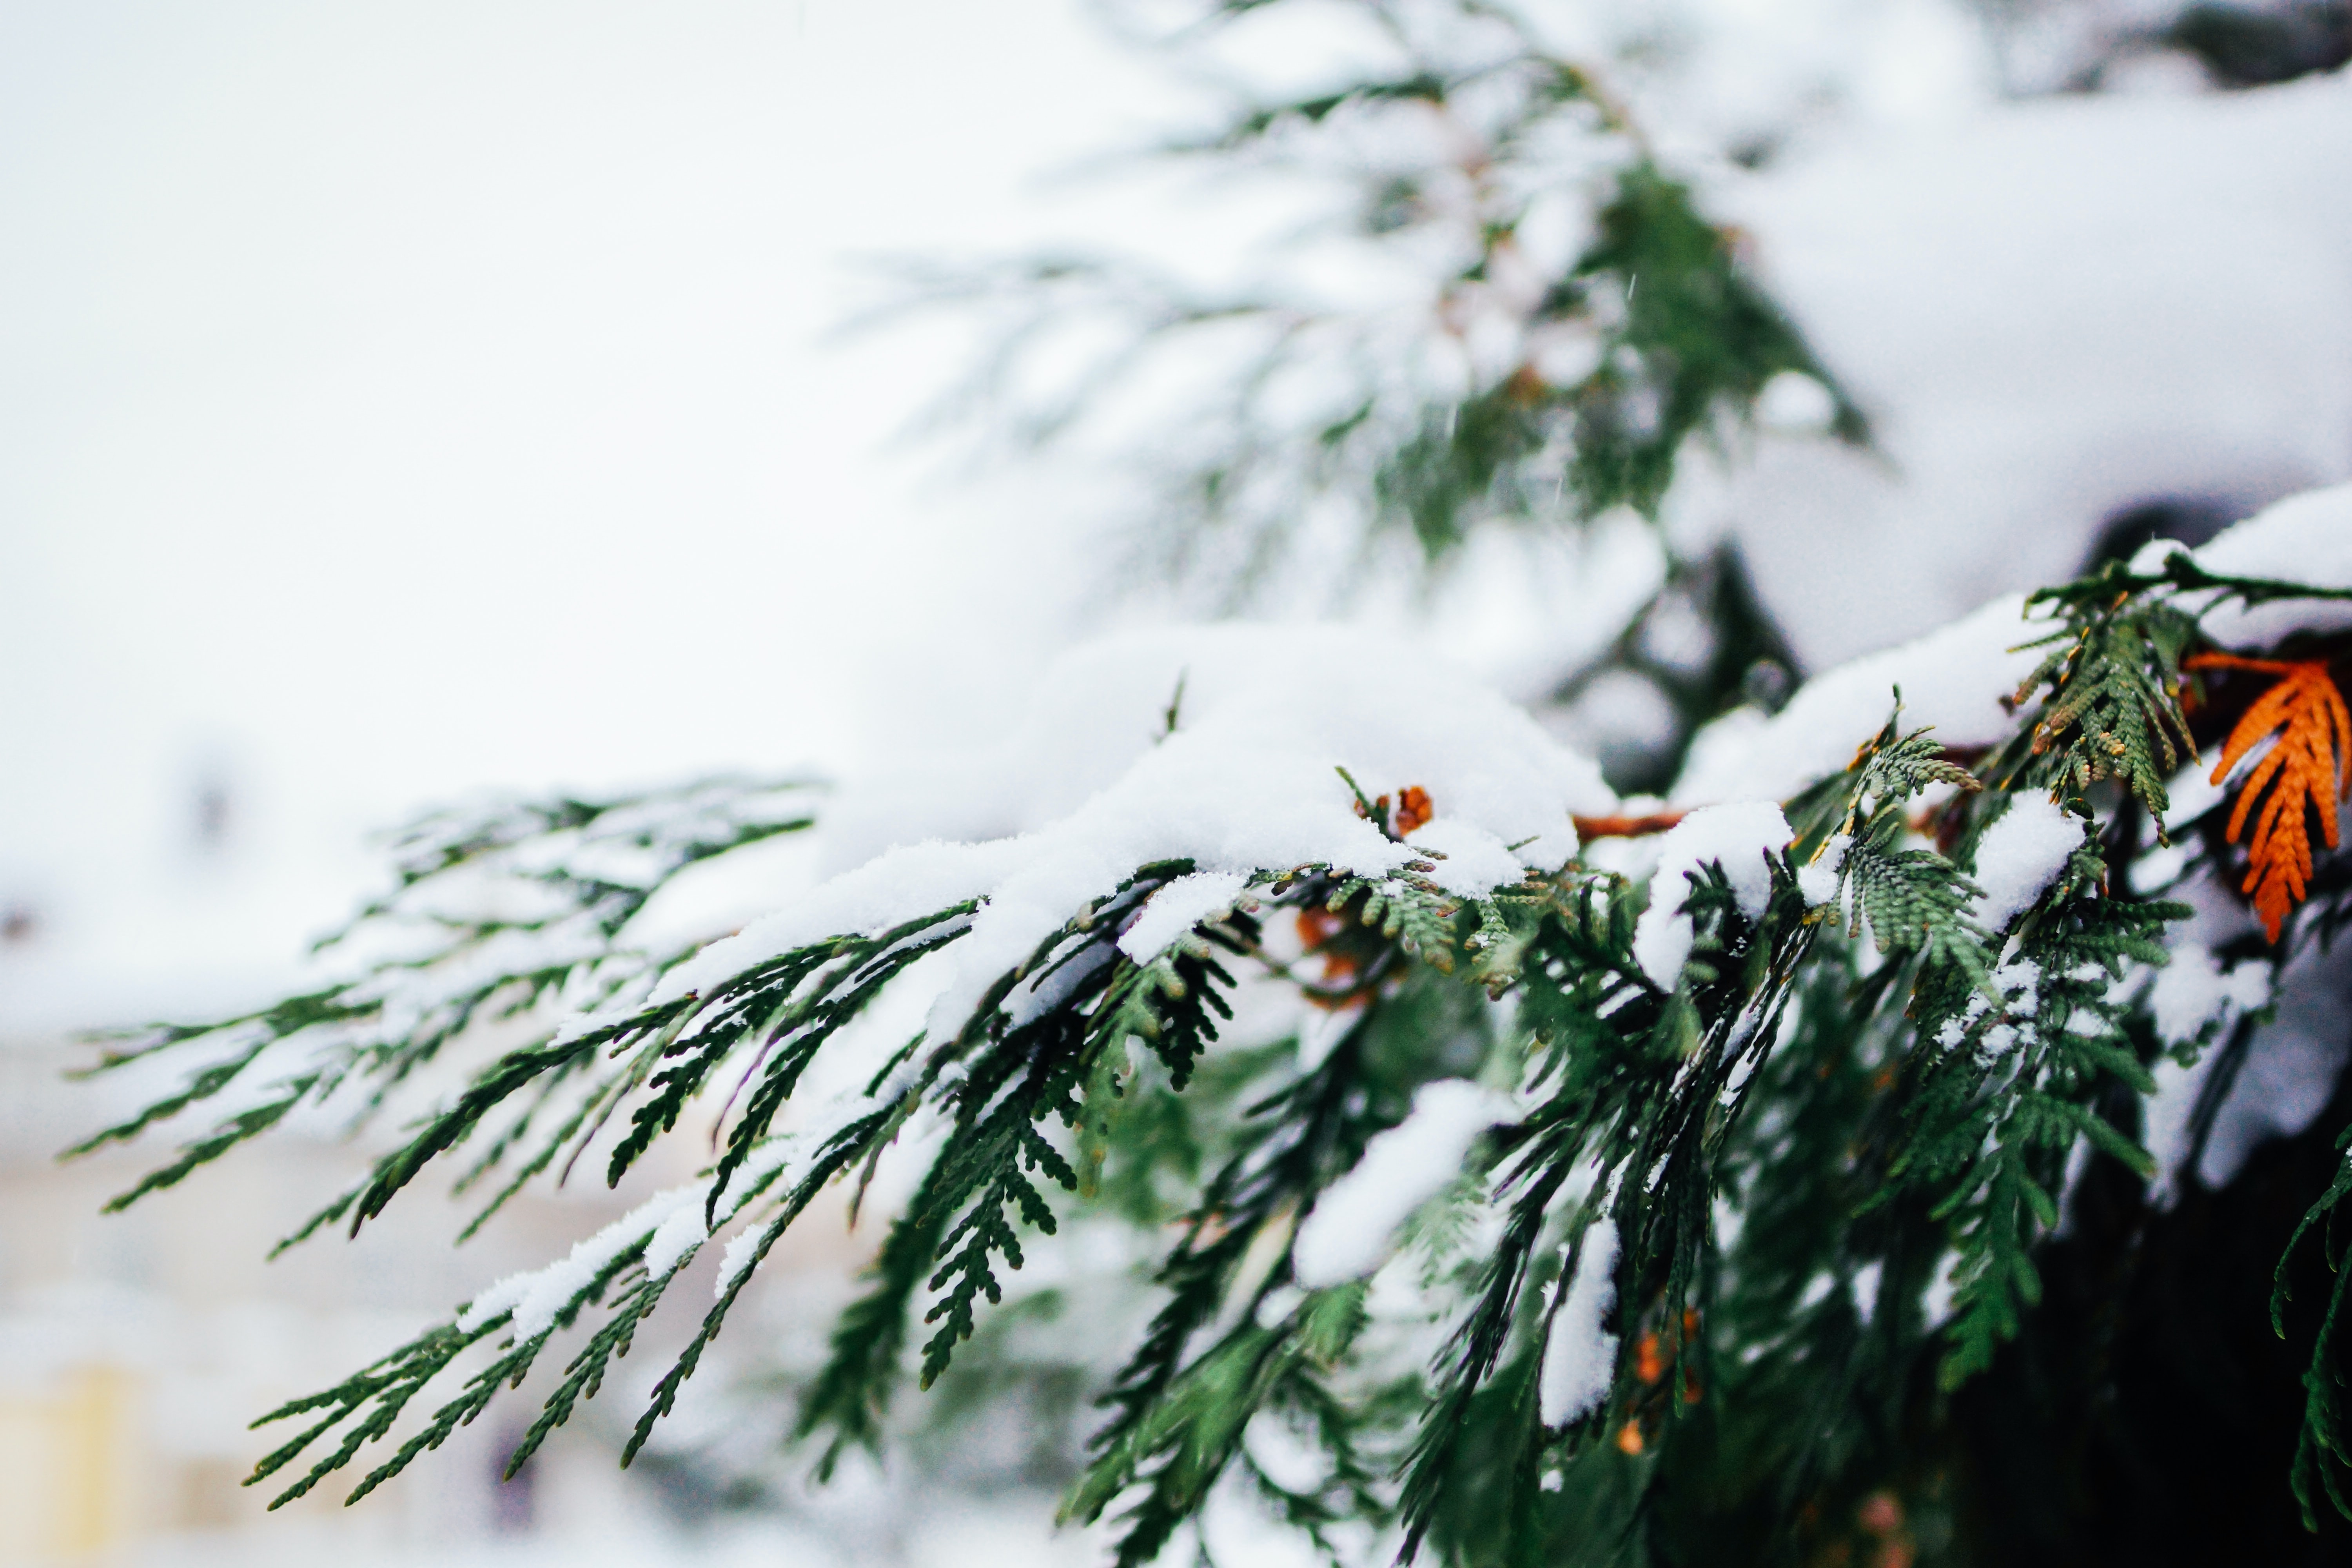 selective focus photography of snow on pine trees during daytime